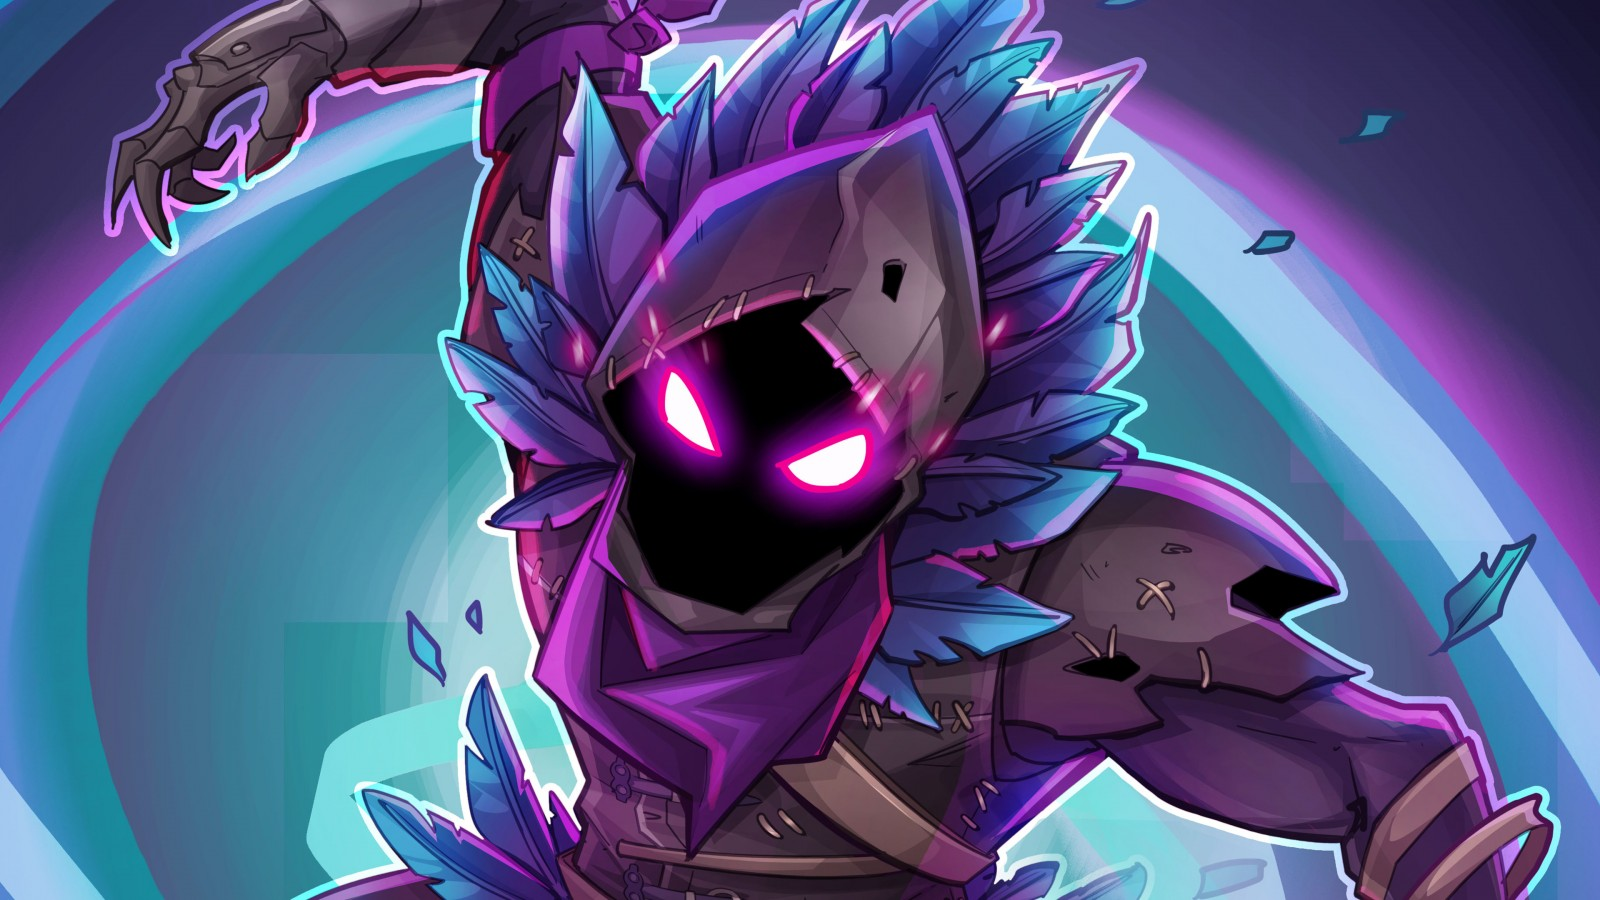 Inspirational Iphone Wallpaper Fortnite Rraven 4k Wallpapers Hd Wallpapers Id 24192